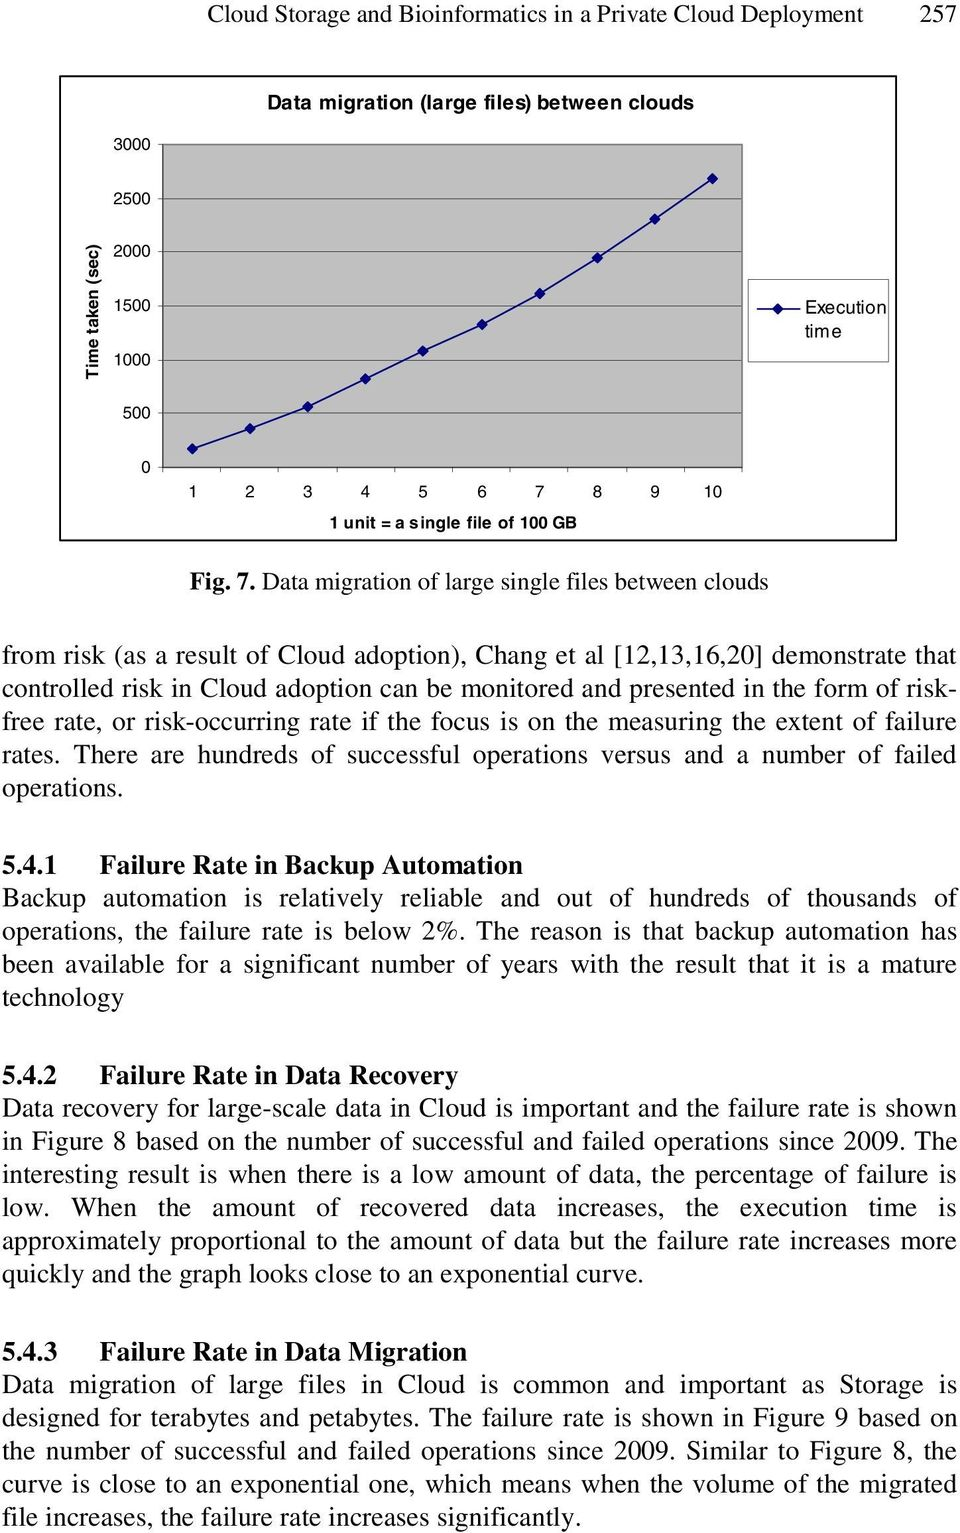 Data migration of large single files between clouds from risk (as a result of Cloud adoption), Chang et al [12,13,16,20] demonstrate that controlled risk in Cloud adoption can be monitored and